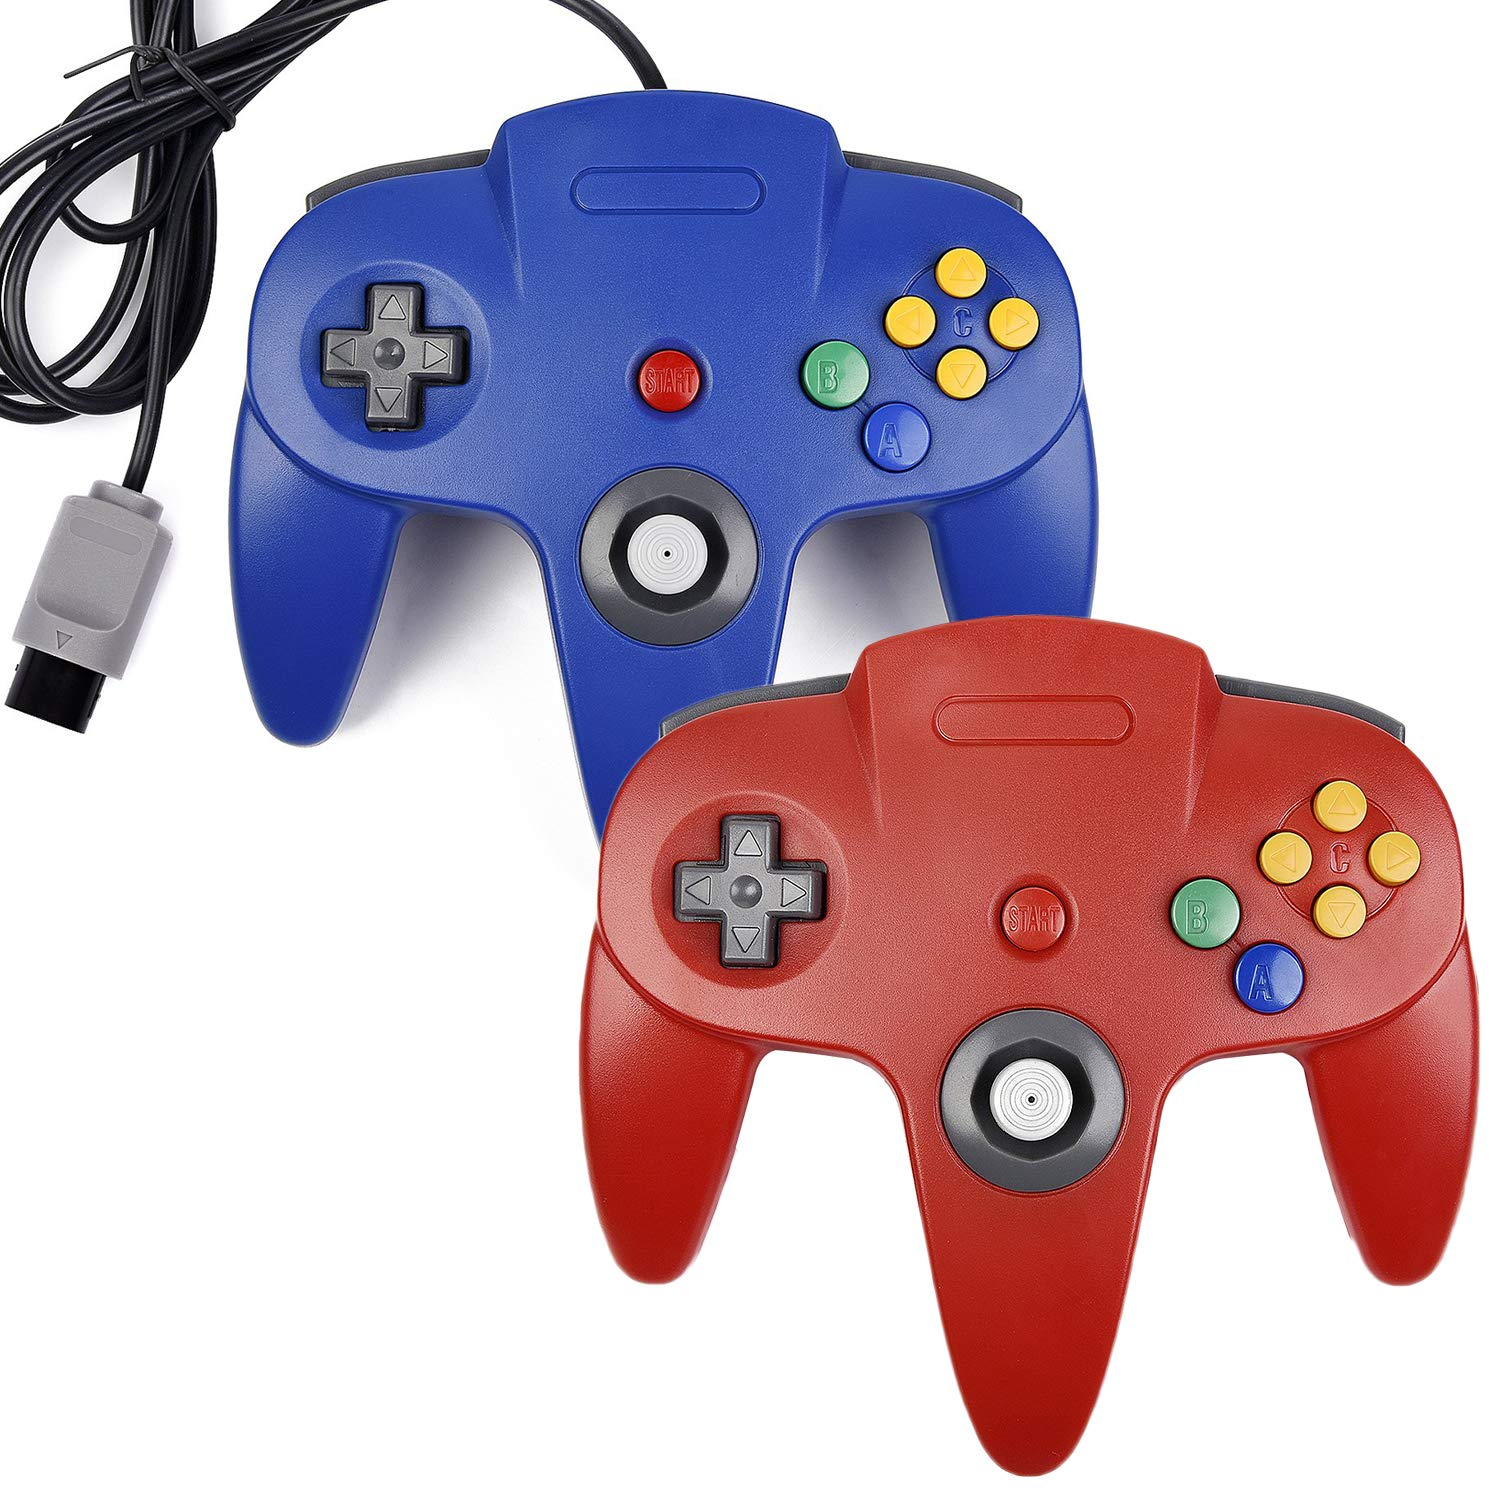 2xClassic N64 Controller,kiwitata Retro Wired Gamepad Controller Joystick for N64 Console Video Games System Red+Blue by kiwitata (Image #1)